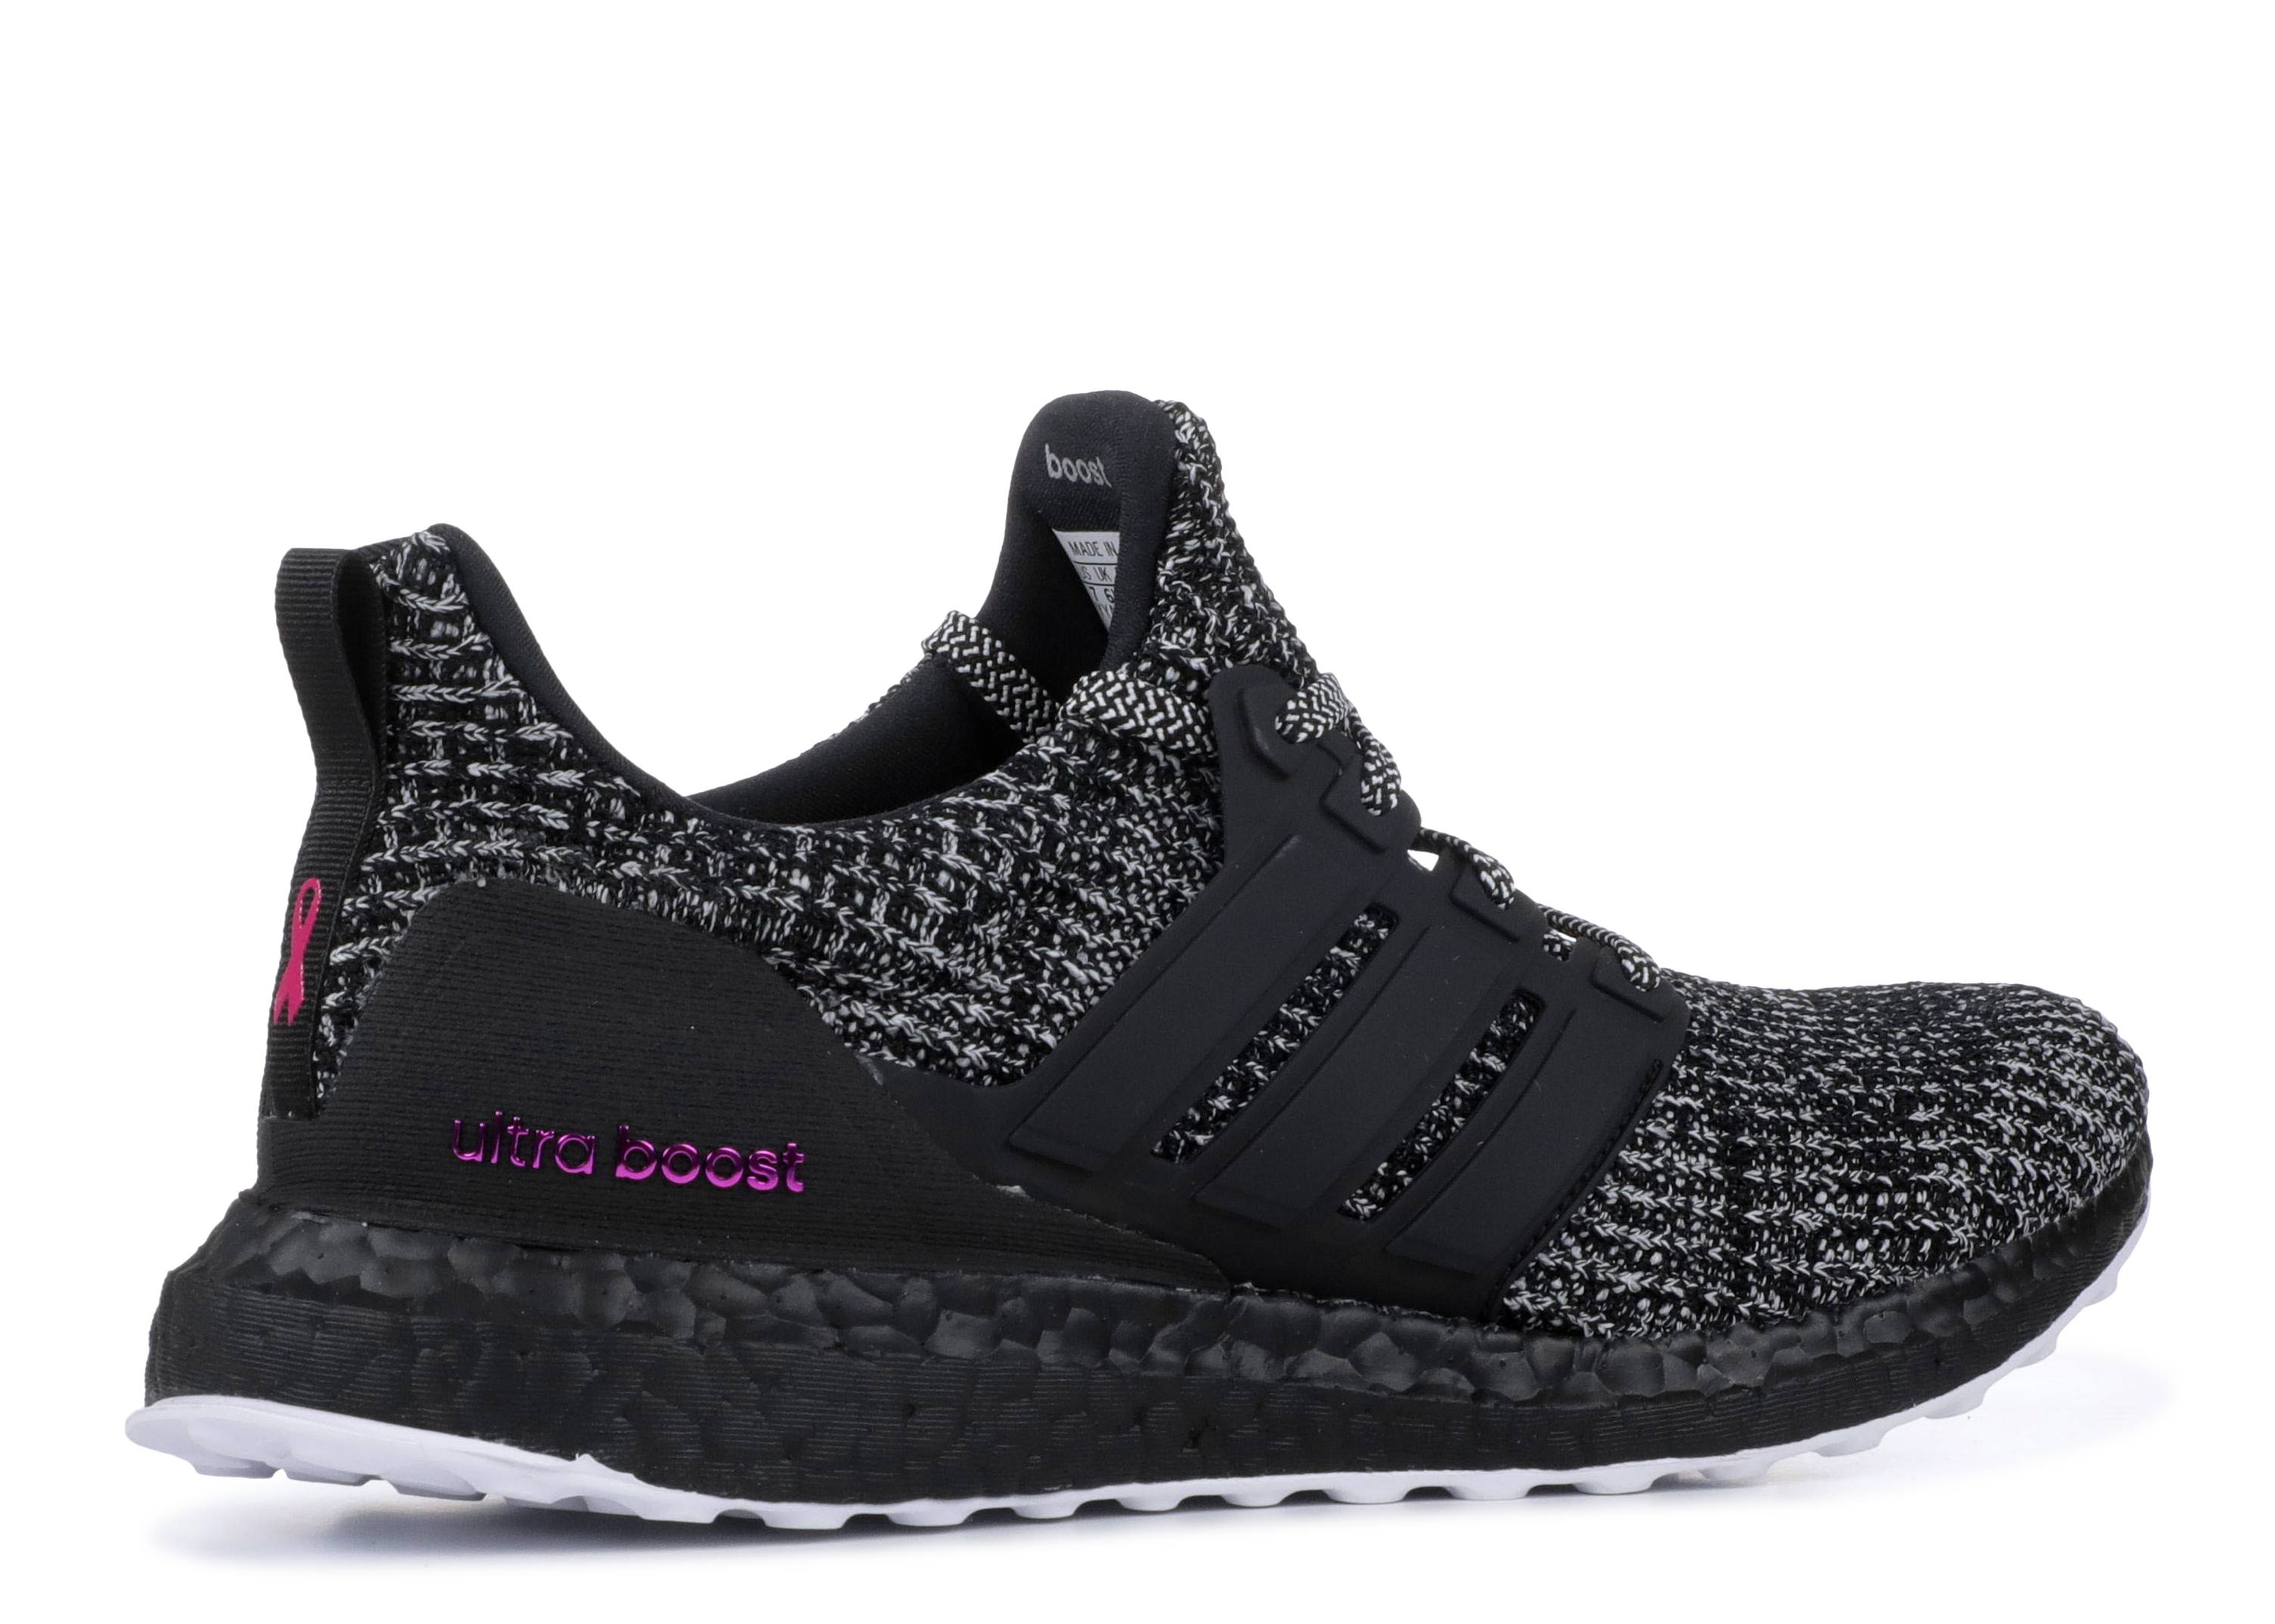 be383facb4c5 Ultraboost